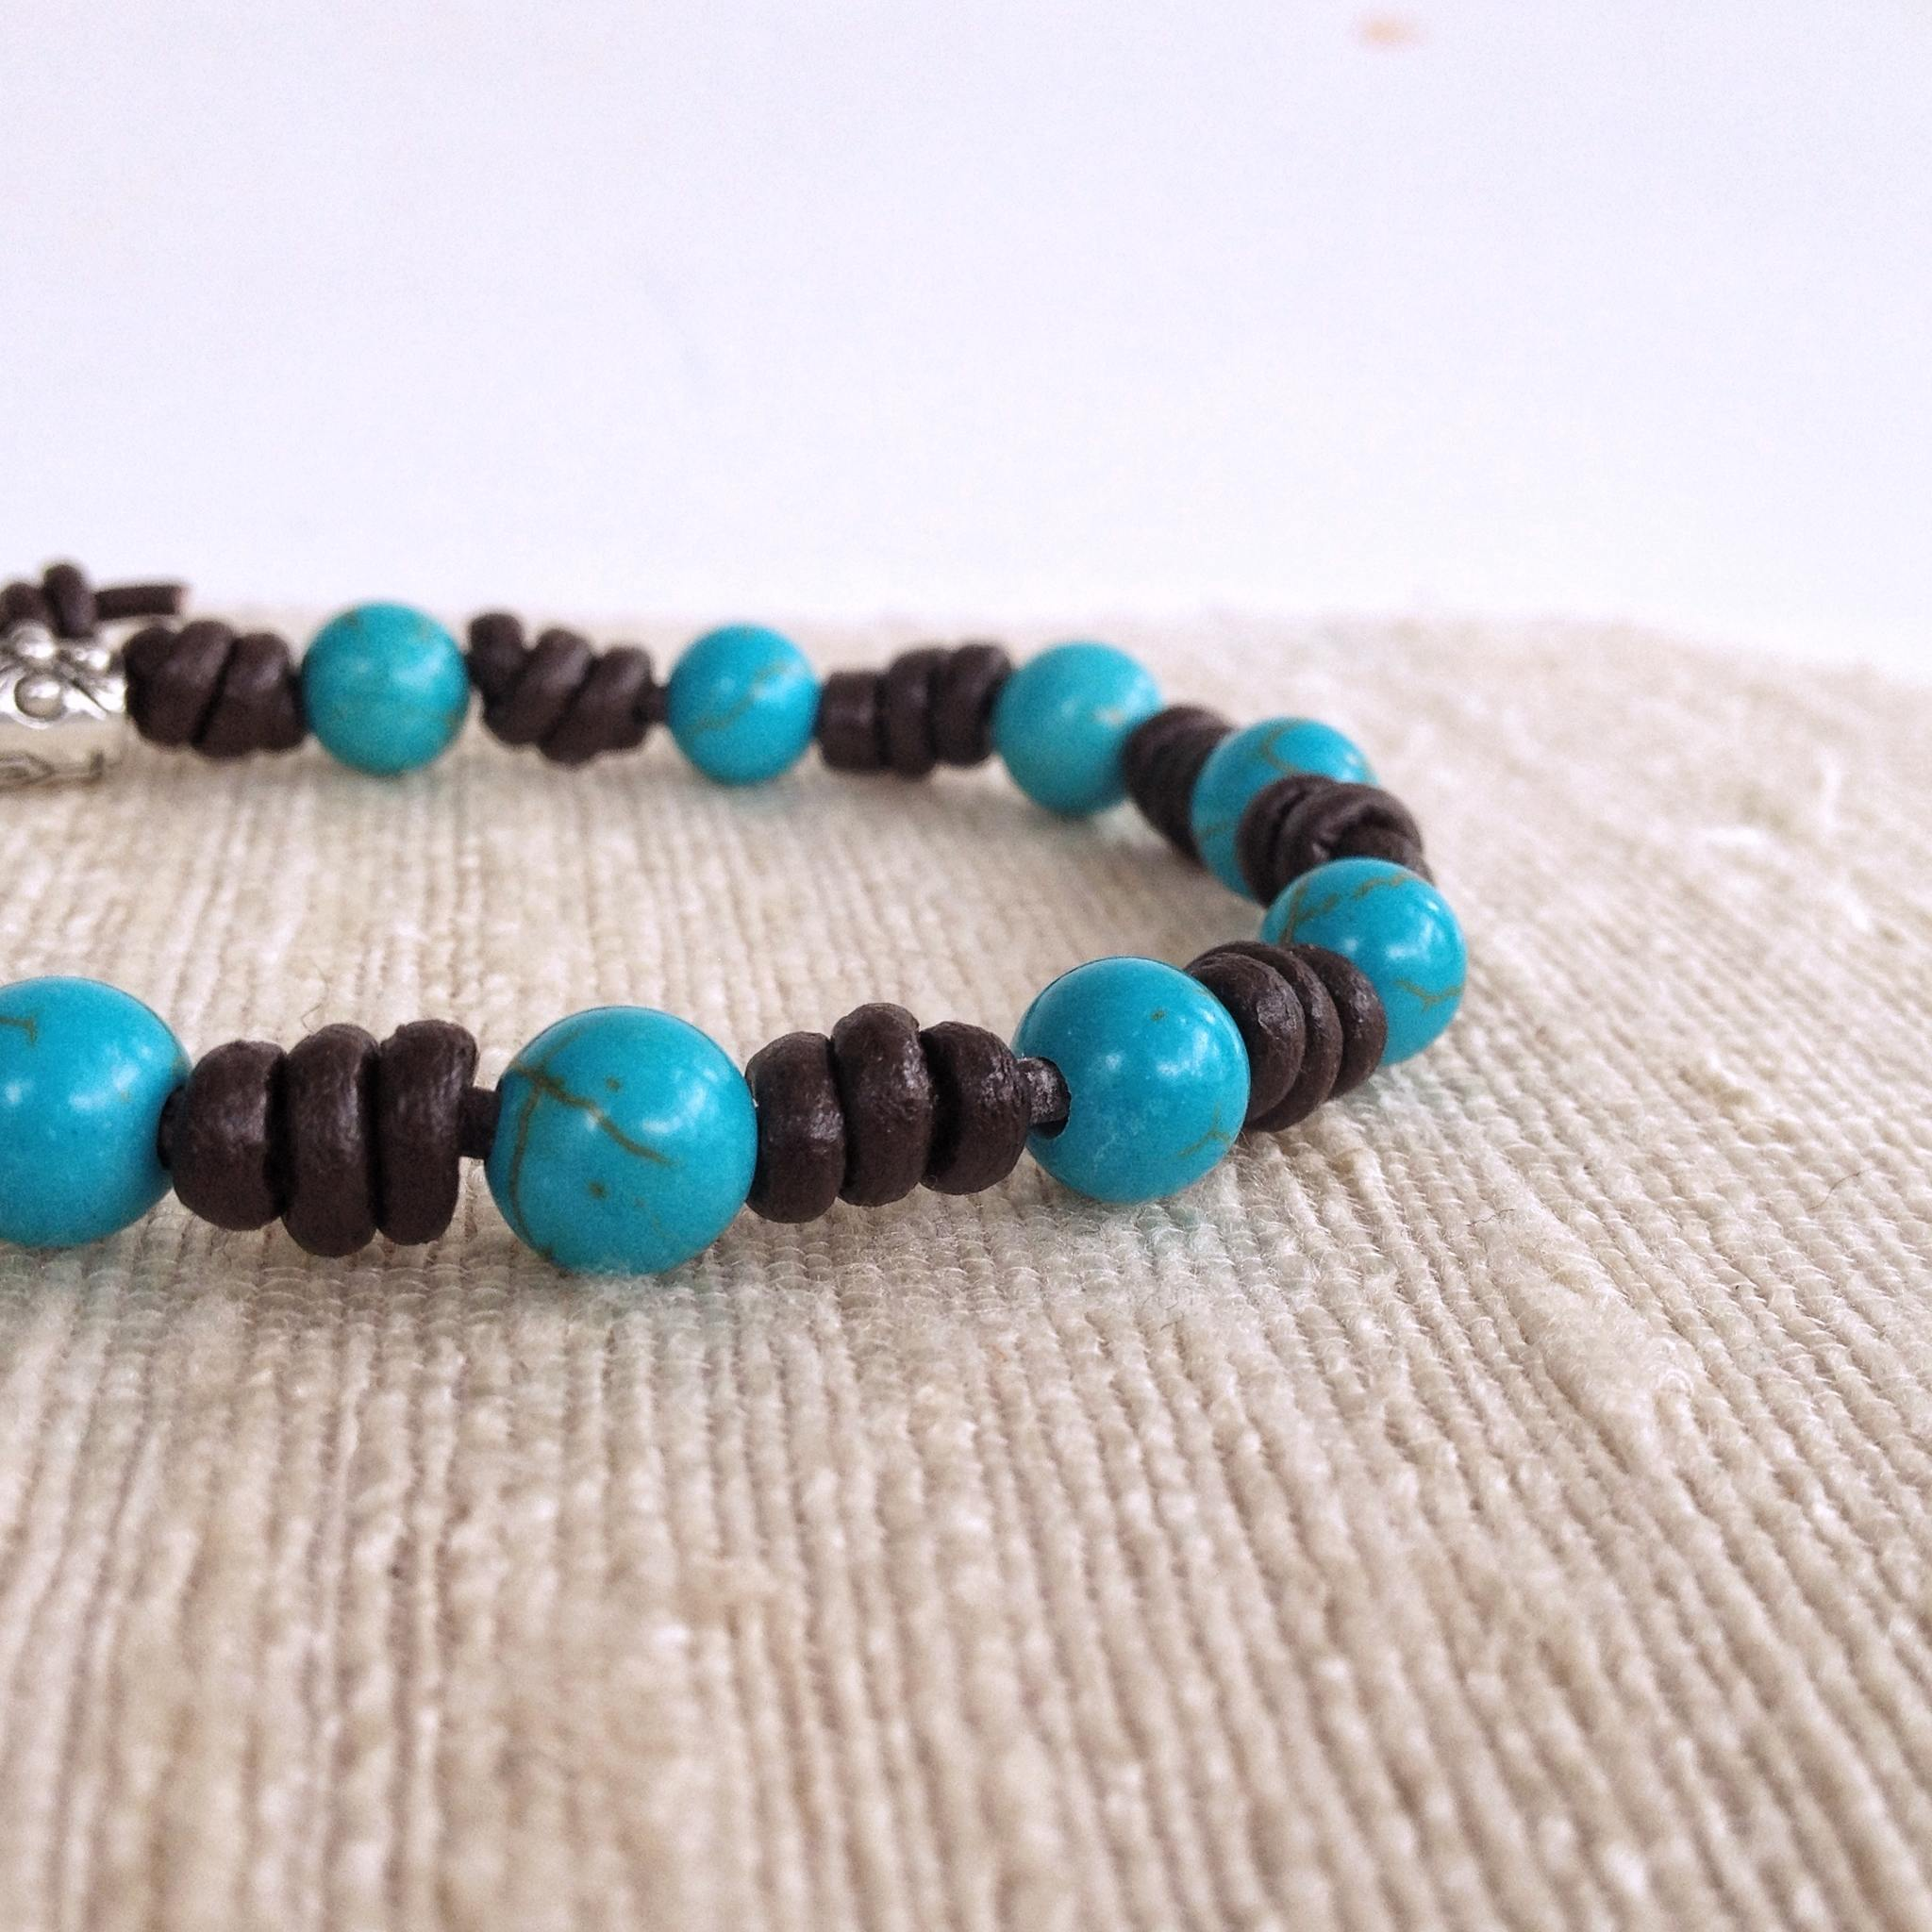 Turquoise Rosary Bracelet Unisex Decade Bracelet On Leather Cord